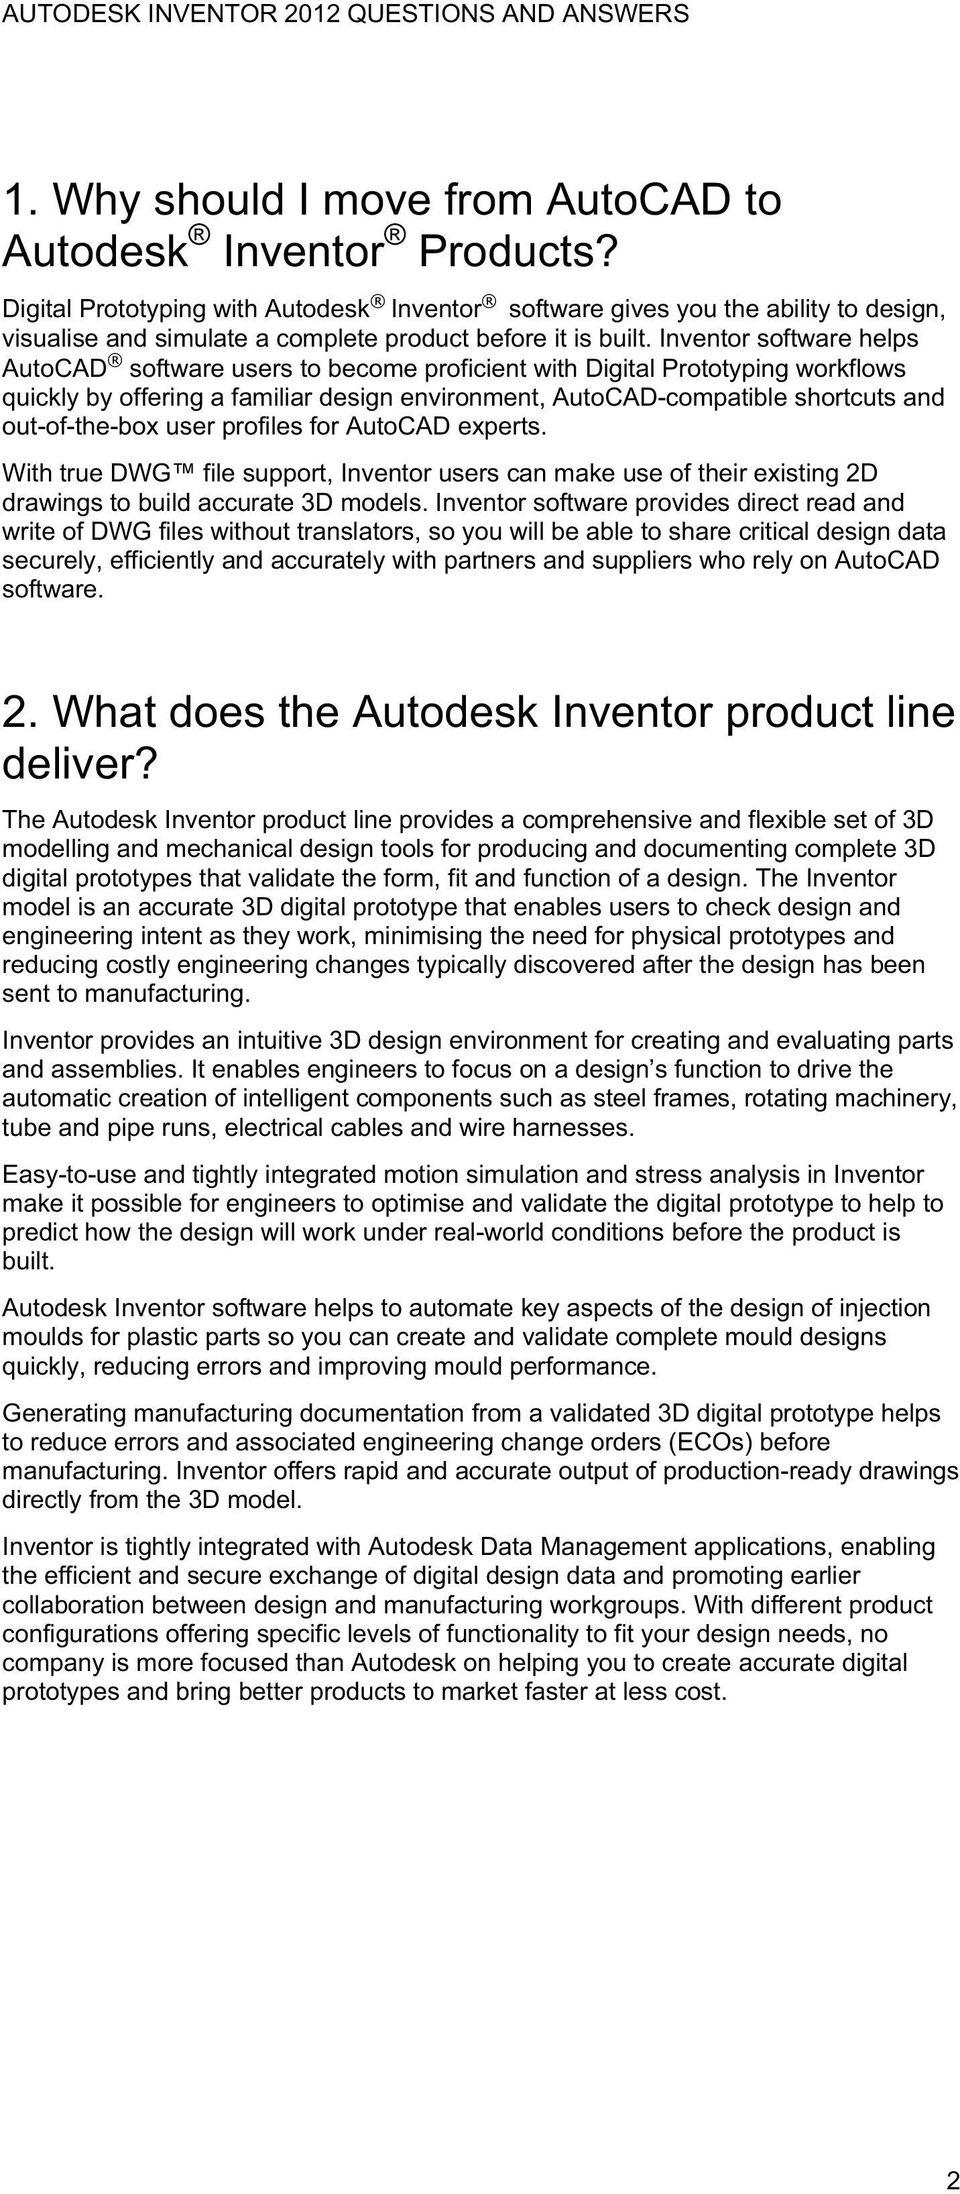 Inventor software helps AutoCAD software users to become proficient with Digital Prototyping workflows quickly by offering a familiar design environment, AutoCAD-compatible shortcuts and